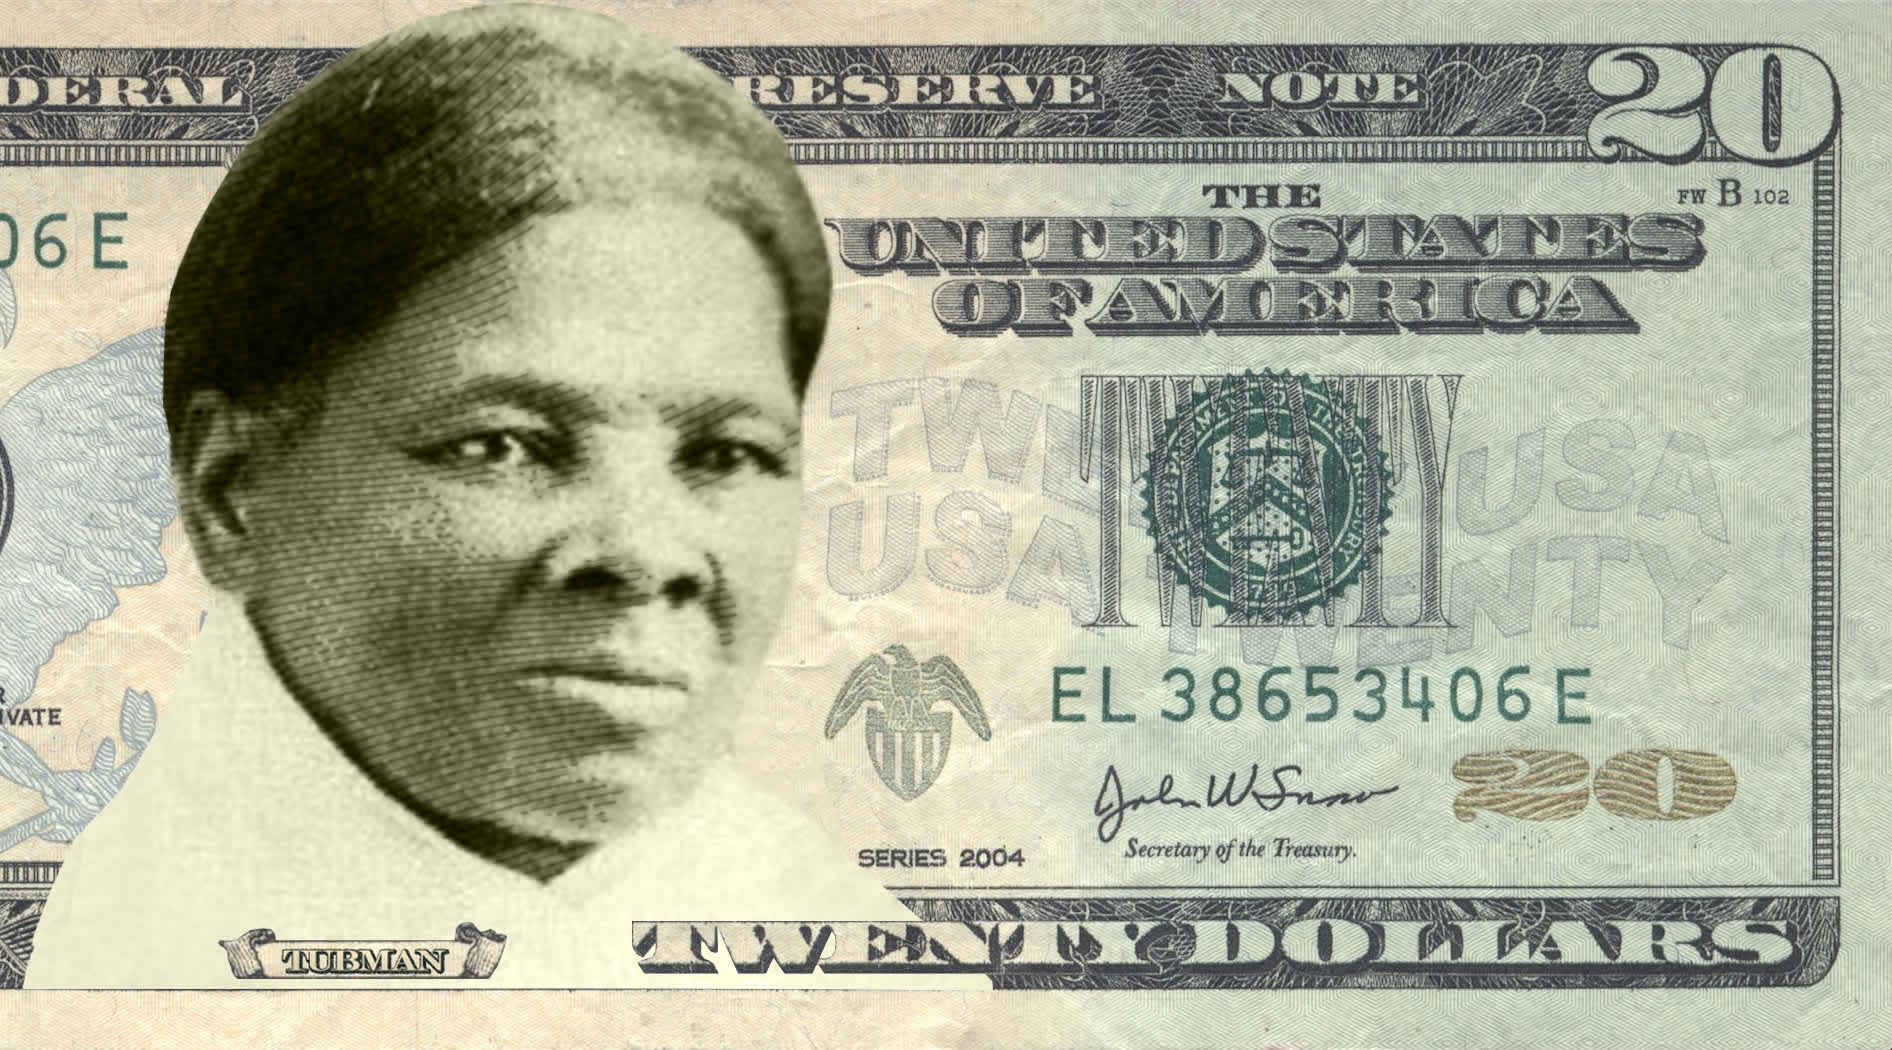 Harriet Tubman $20 bill no longer coming in 2020: Mnuchin says redesign postponed